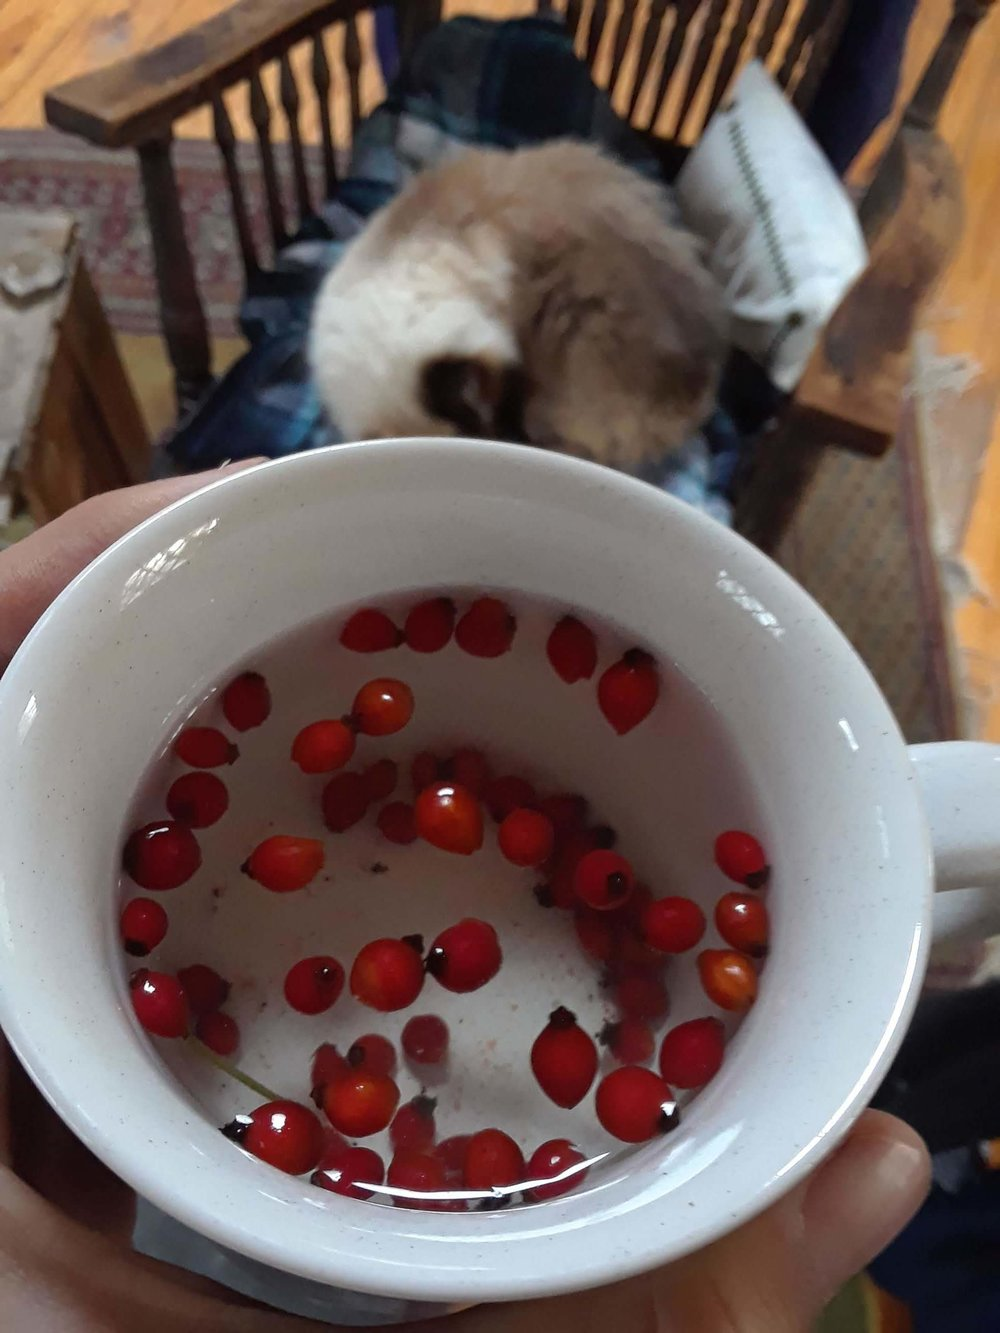 Rosehip tea from multiflora rose right outside. Thank for keeping us healthy!